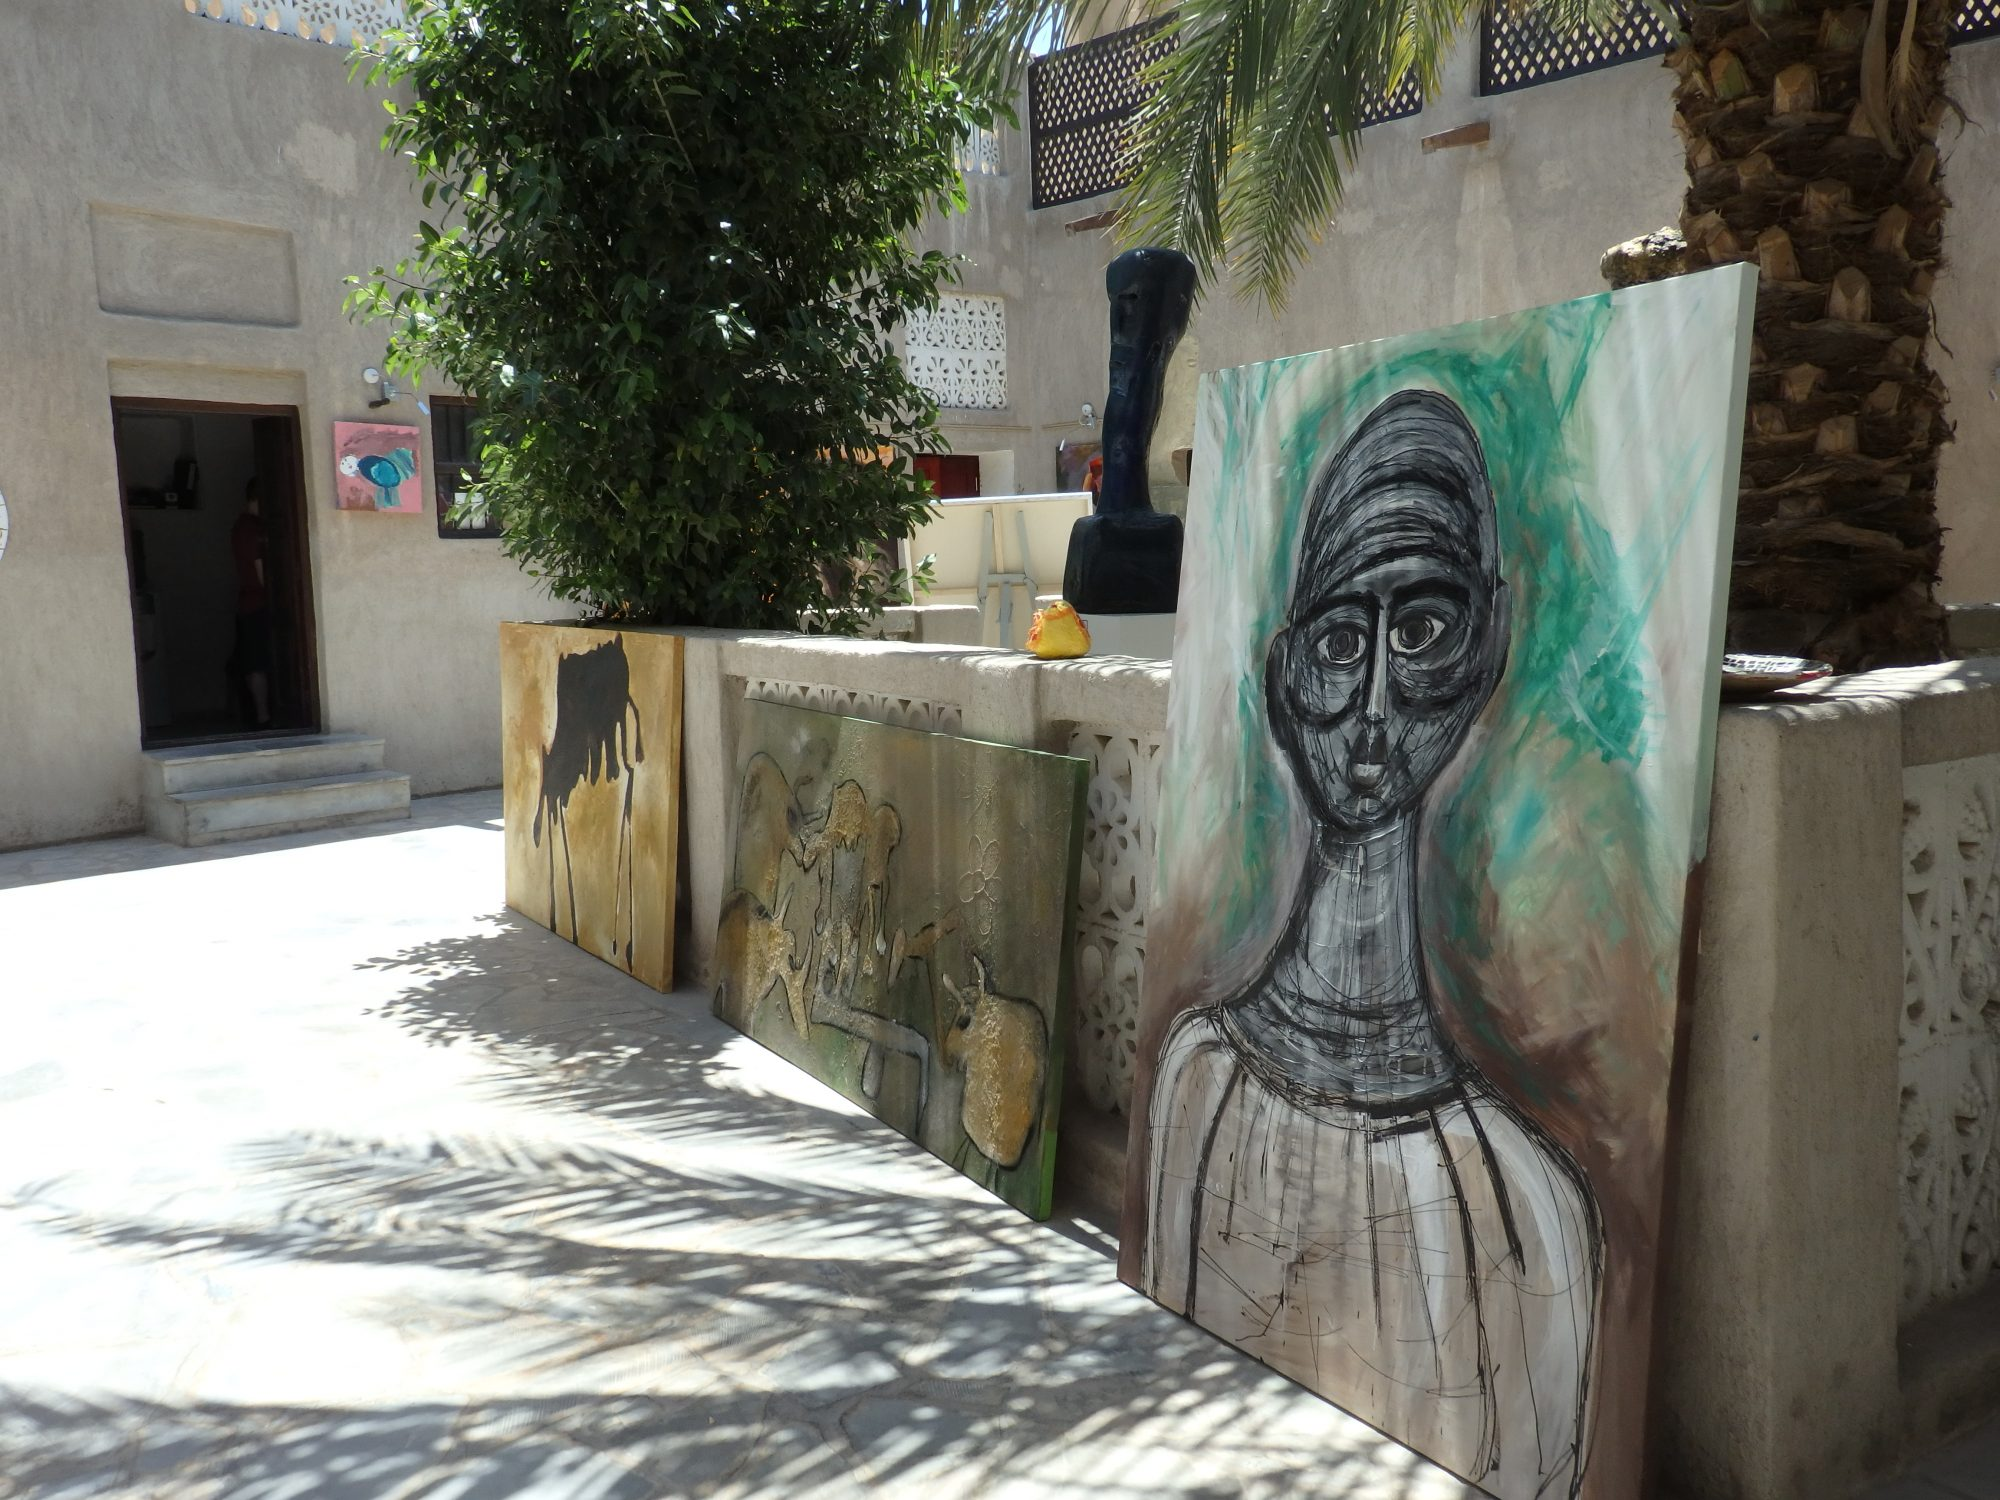 paintings in the Mahaweb from Beautiful People gallery in the Bastakiya section of Old Dubai